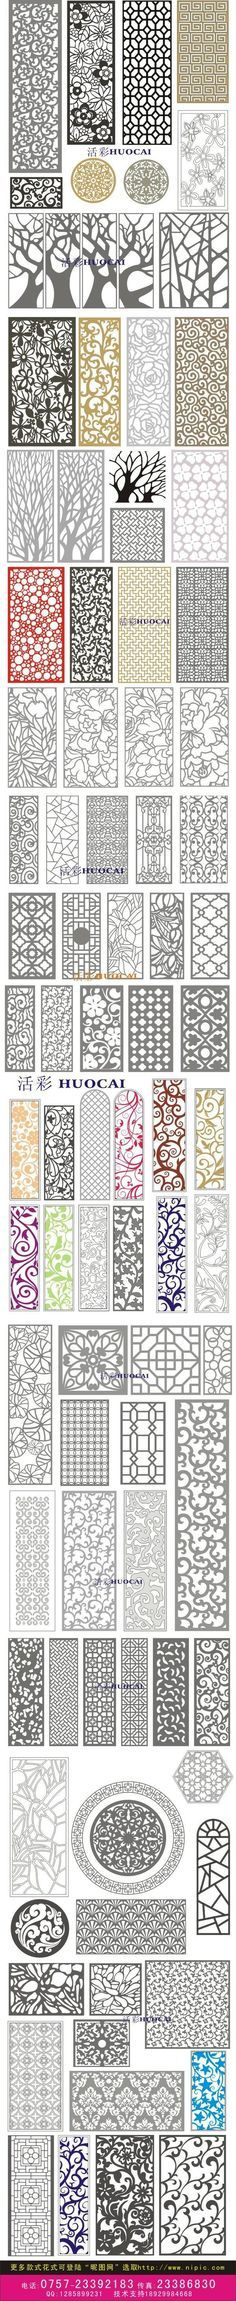 patterns for stencil